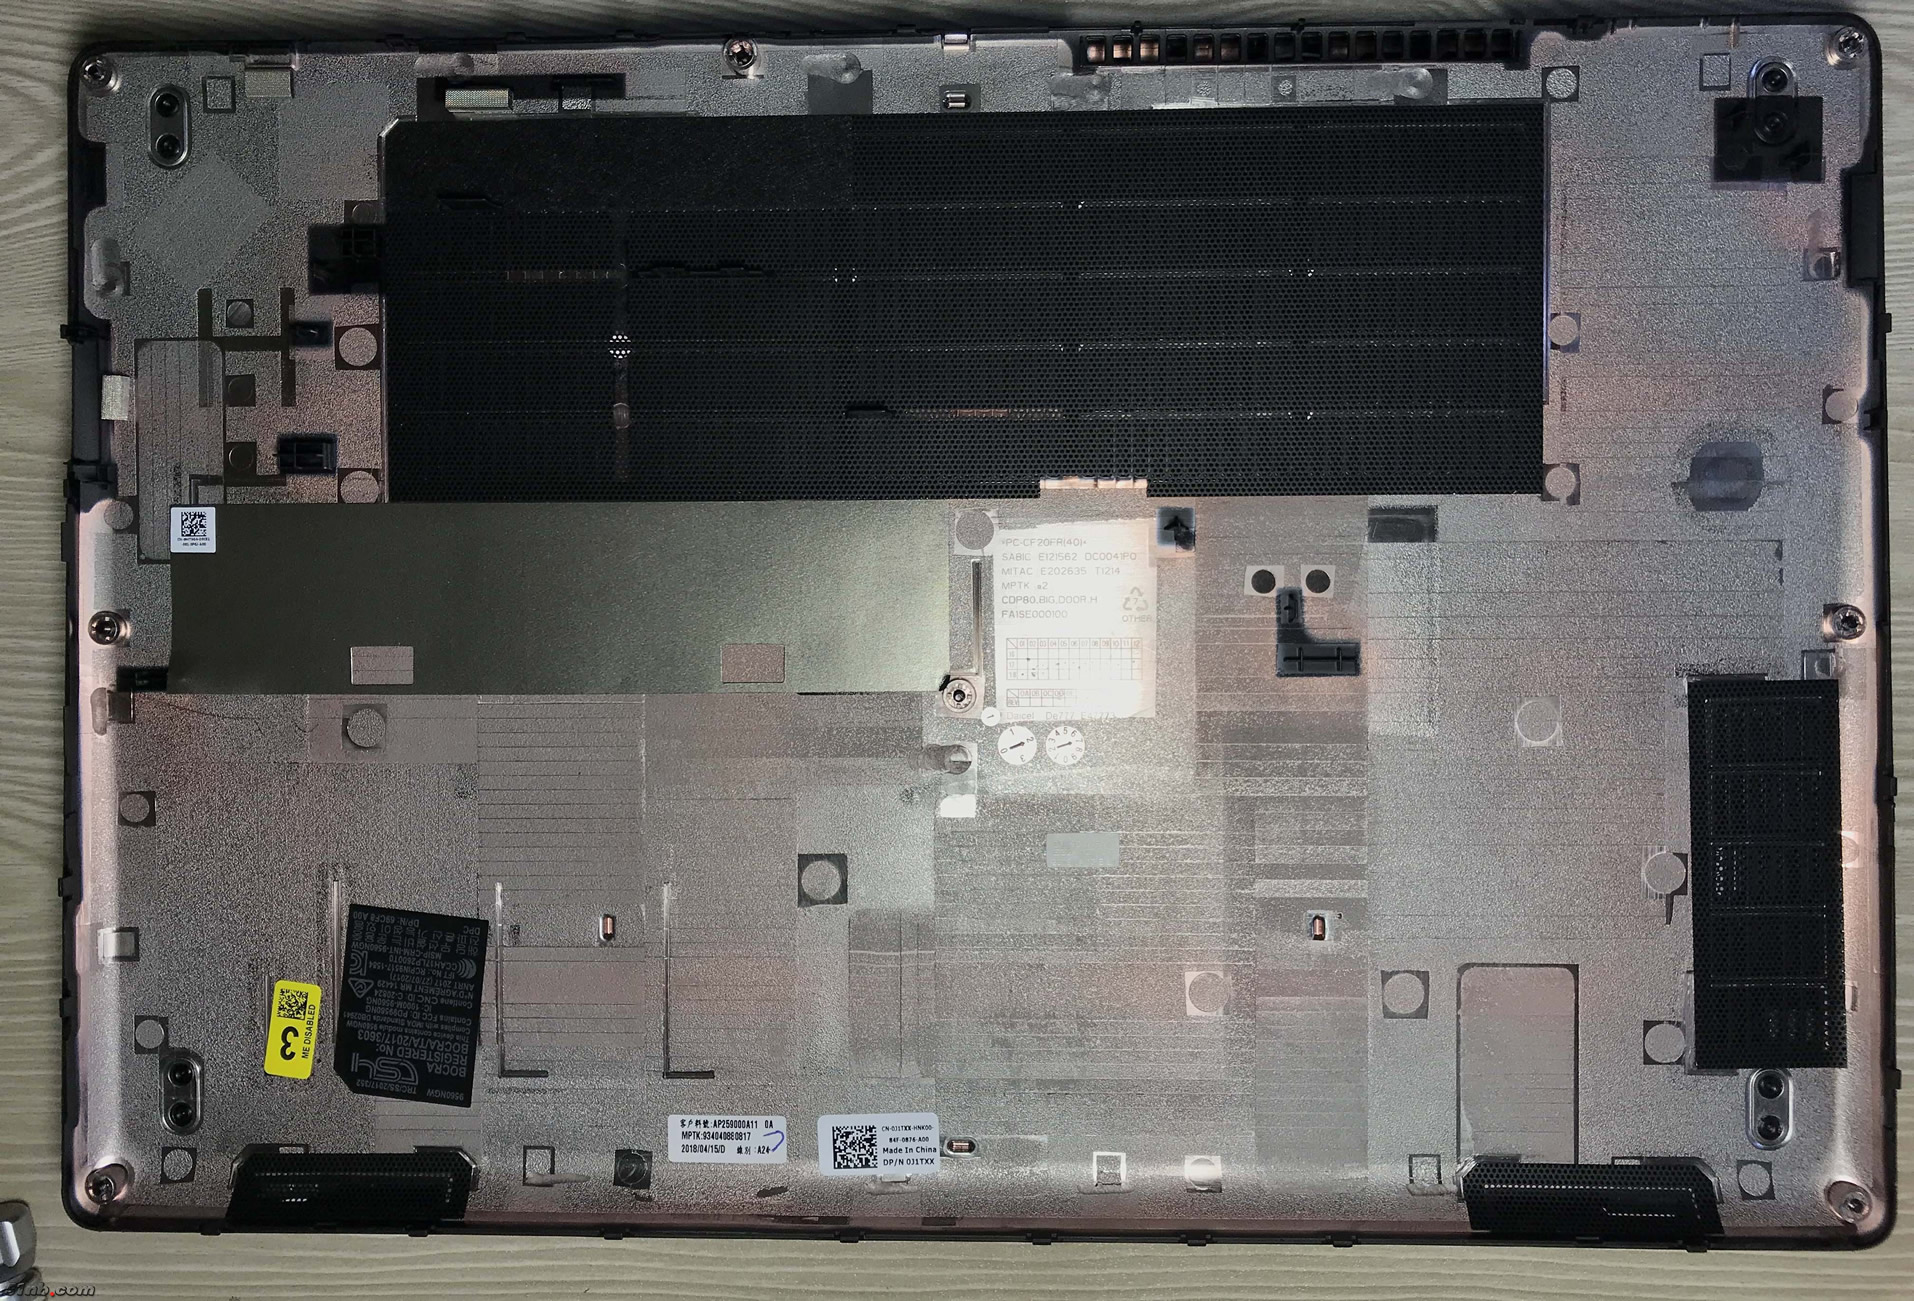 Dell Precision 3530 Disassembly (RAM, SSD, HDD upgrade options